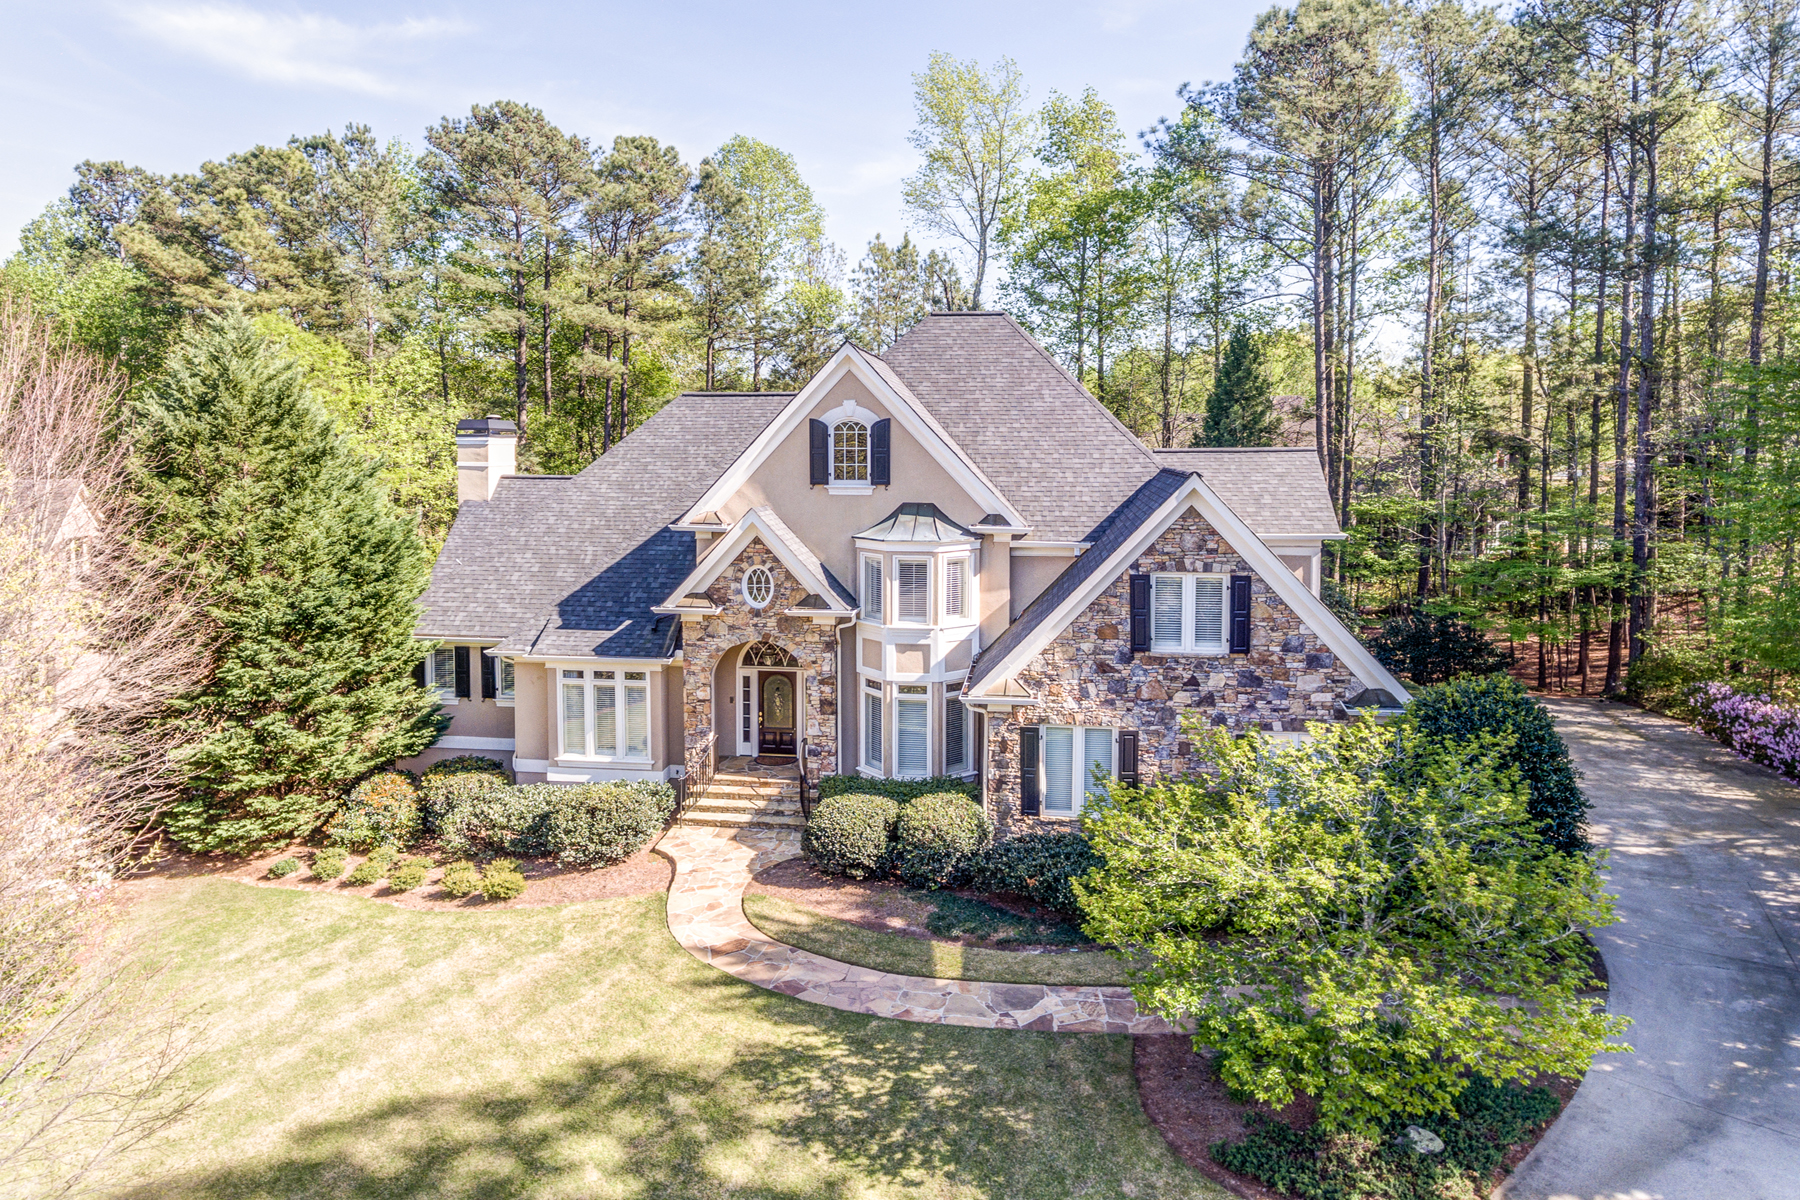 Maison unifamiliale pour l Vente à Beautiful Custom Home - Outstanding Country Club Setting 2241 Merion Way NW Kennesaw, Georgia, 30152 États-Unis